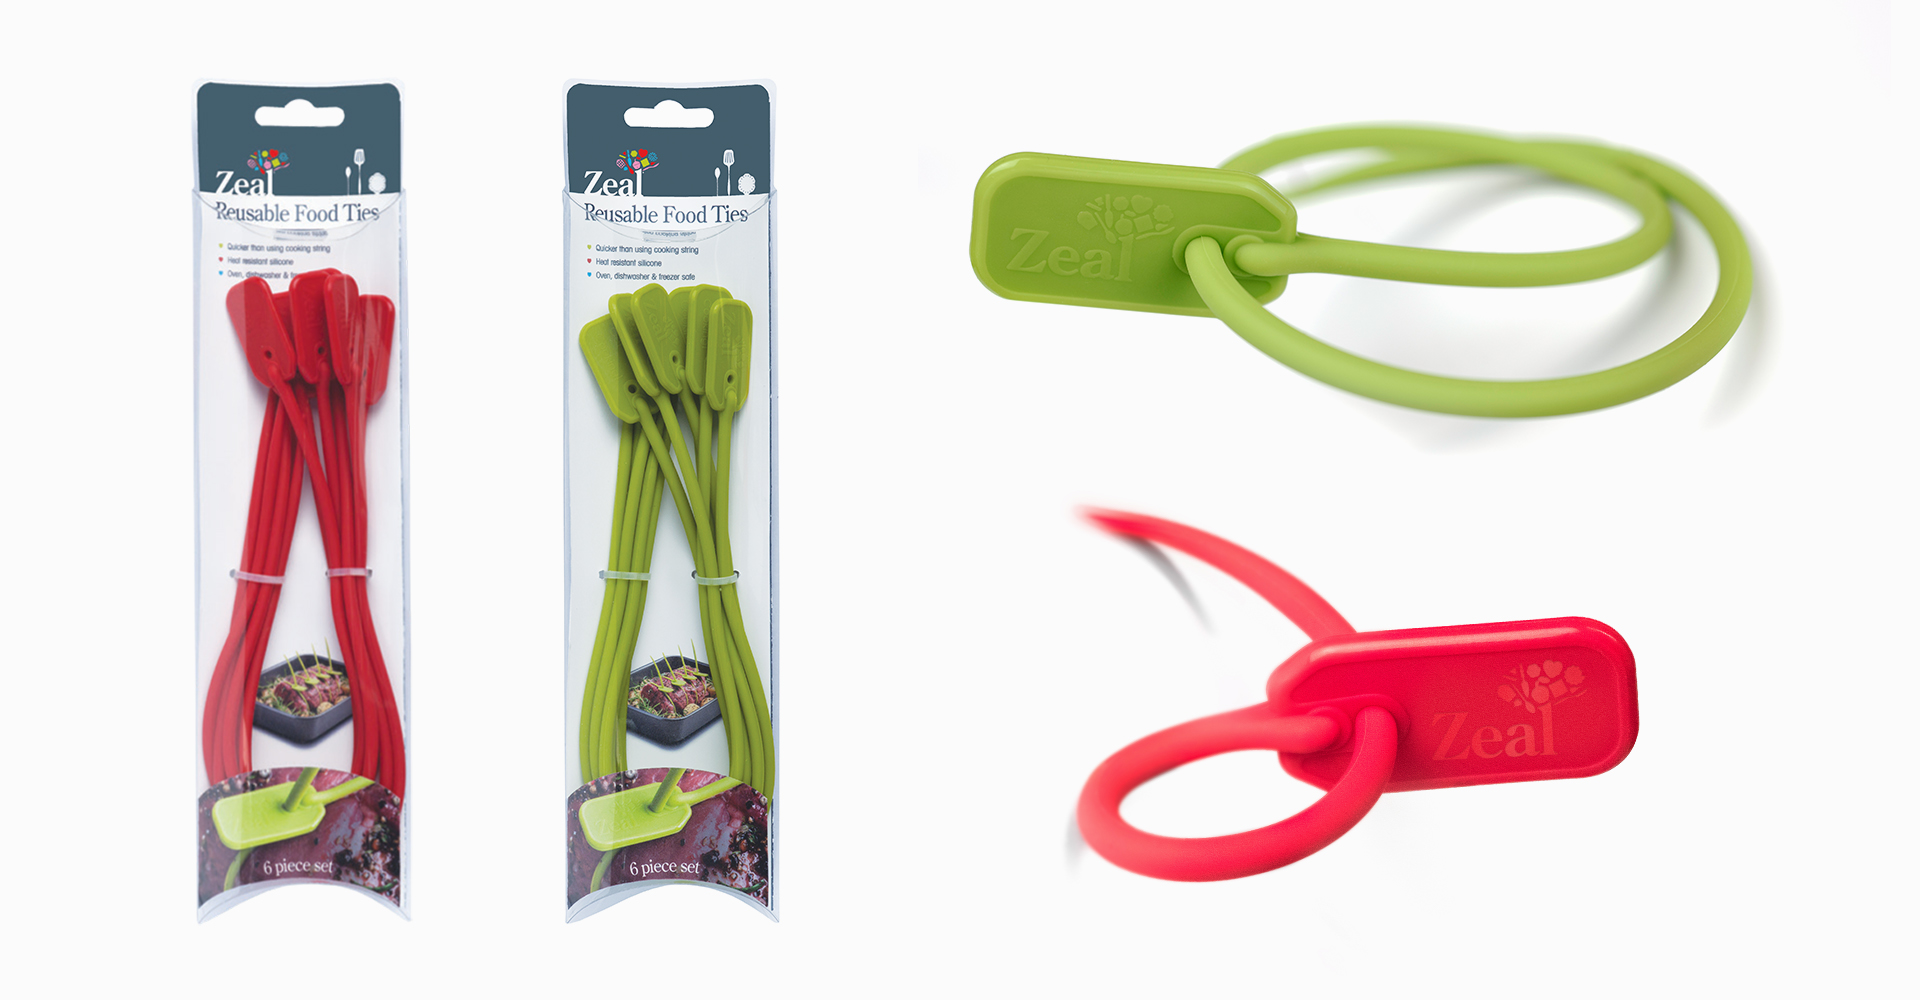 CKS Zeal 2018 range| Silicone ties - Tie - Cable - Red - Green - Packaging - Logo - Graphics - Graphic Design - Product - Injection moulded - Multiple cables - Photography - Design